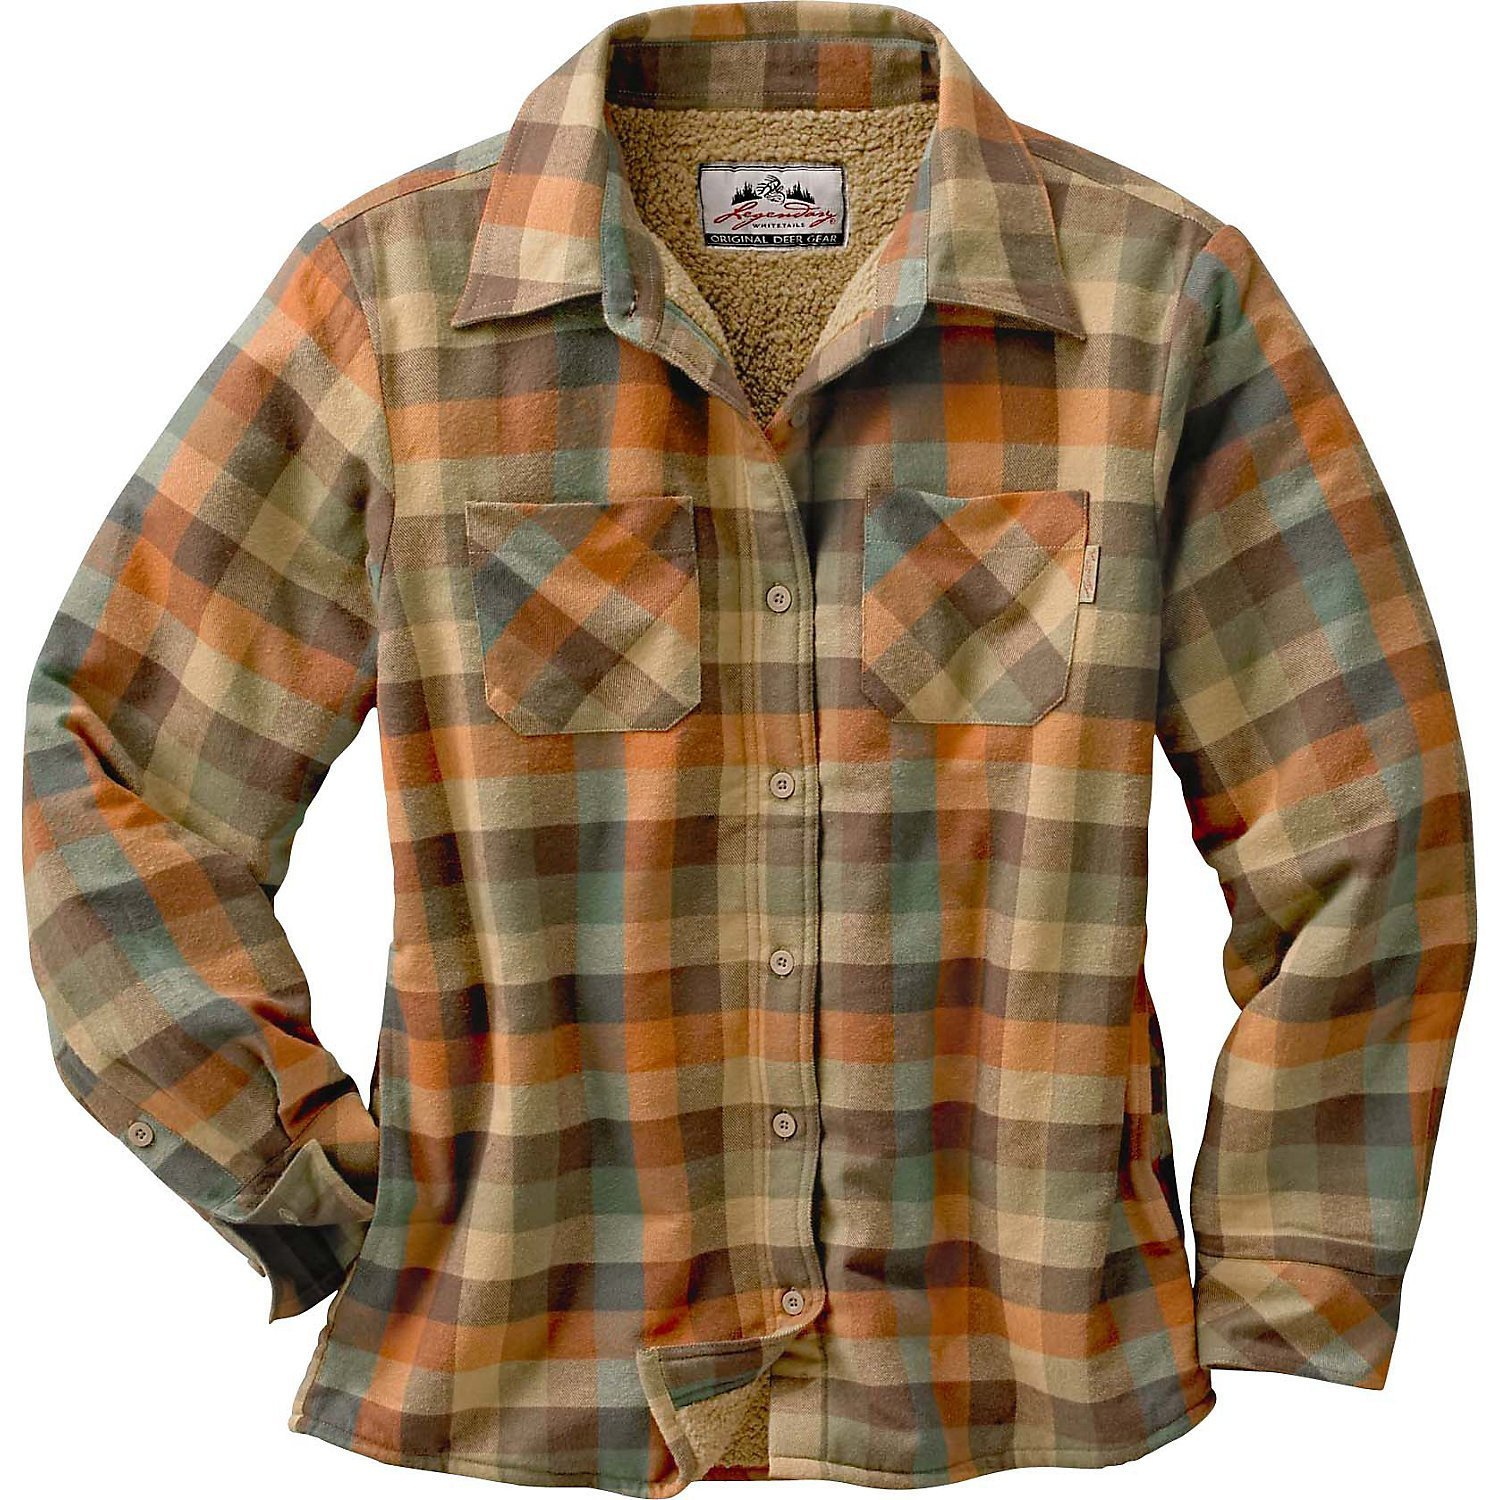 Legendary Whitetails Women's Open Country Shirt Jacket Rustic XX-Large